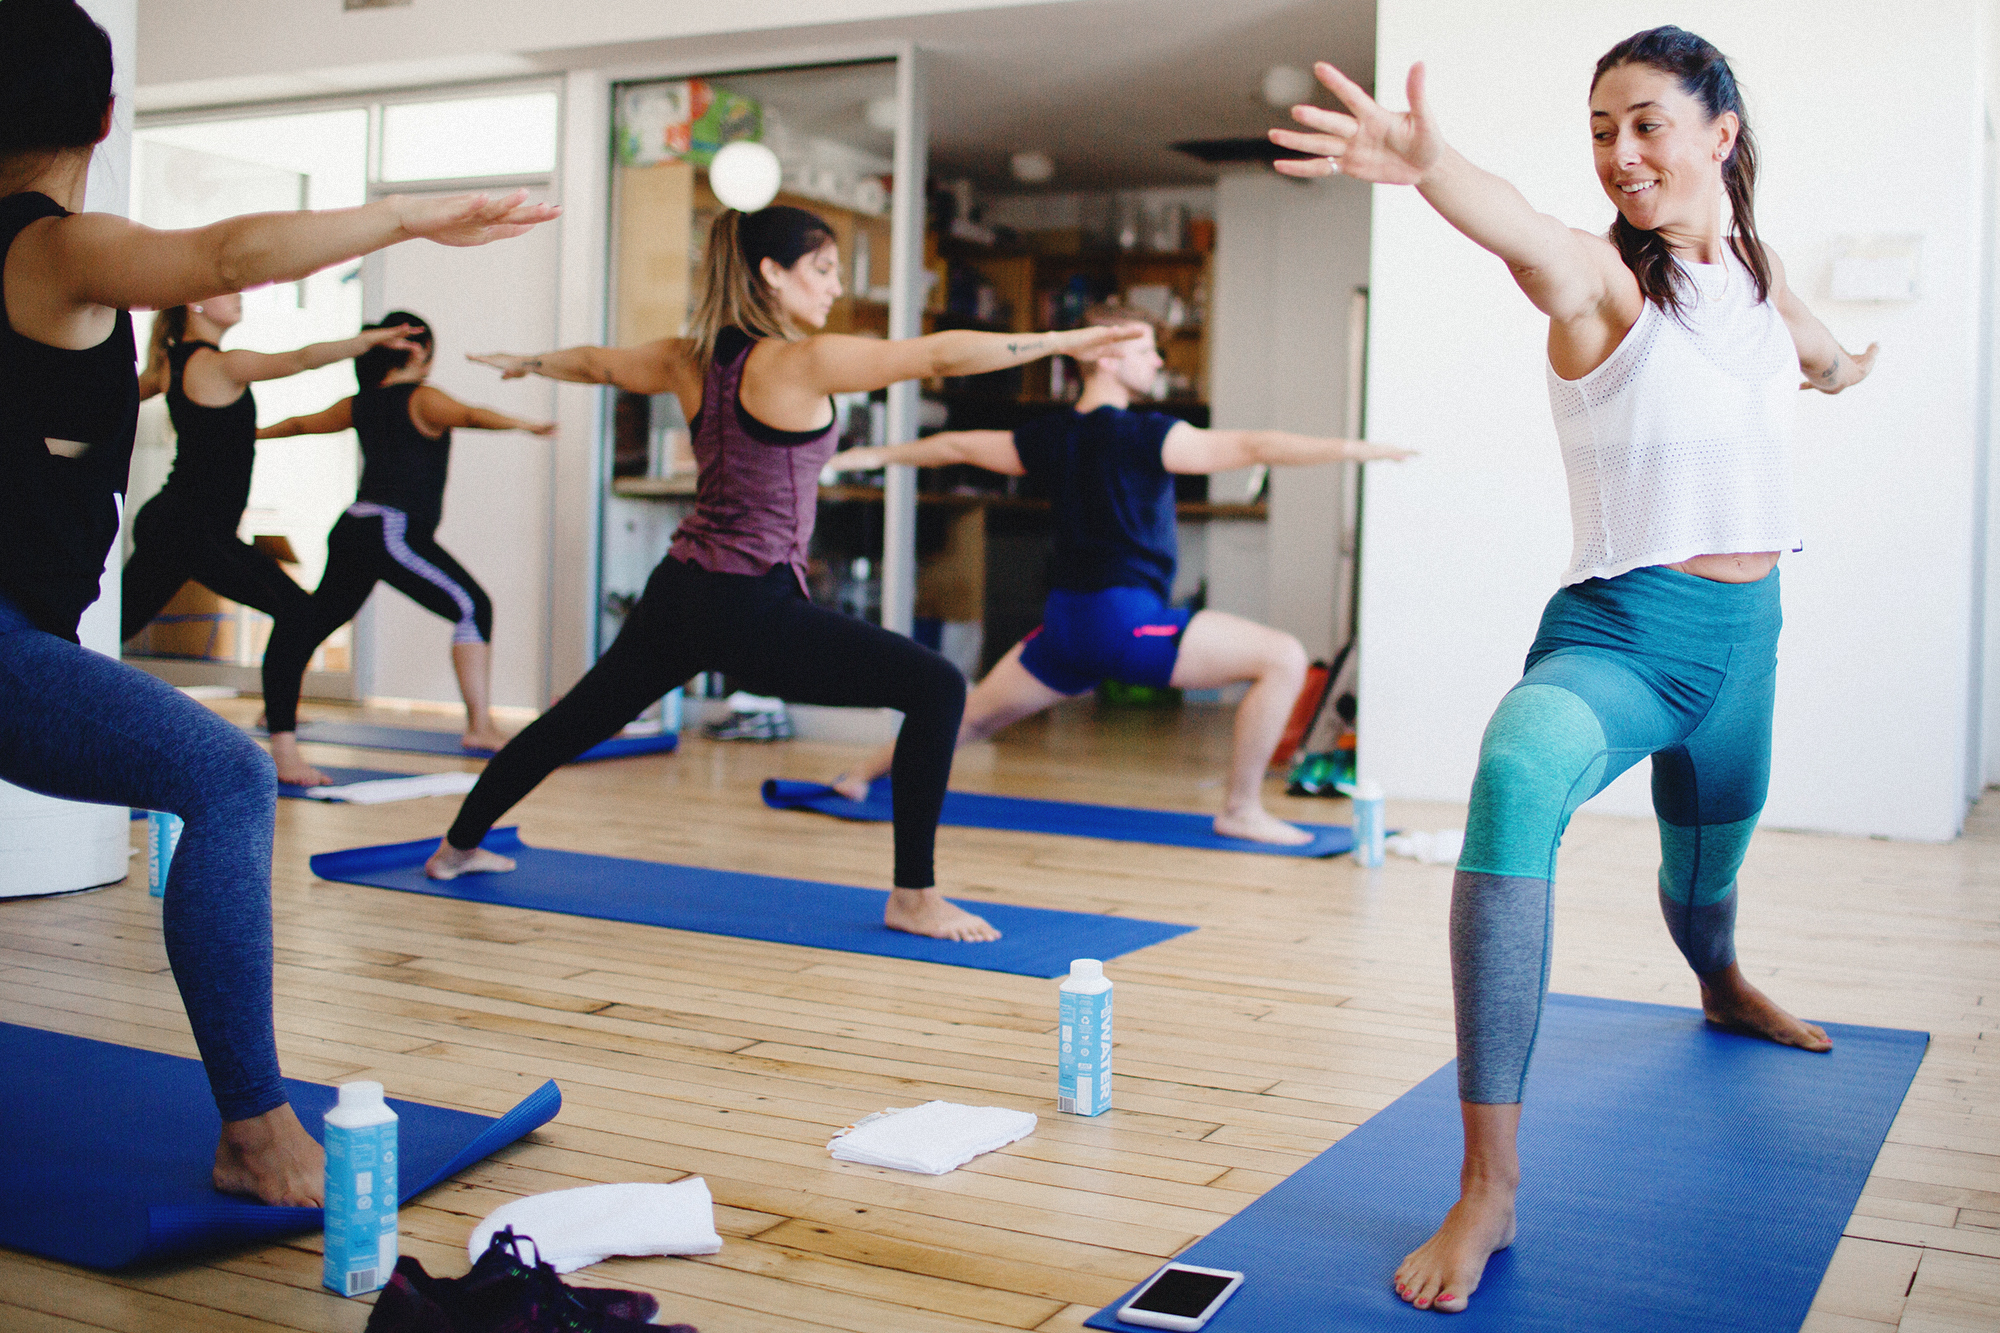 Katelin Sisson of Yoga for Bad People Leading a Workshop at Brand Assembly